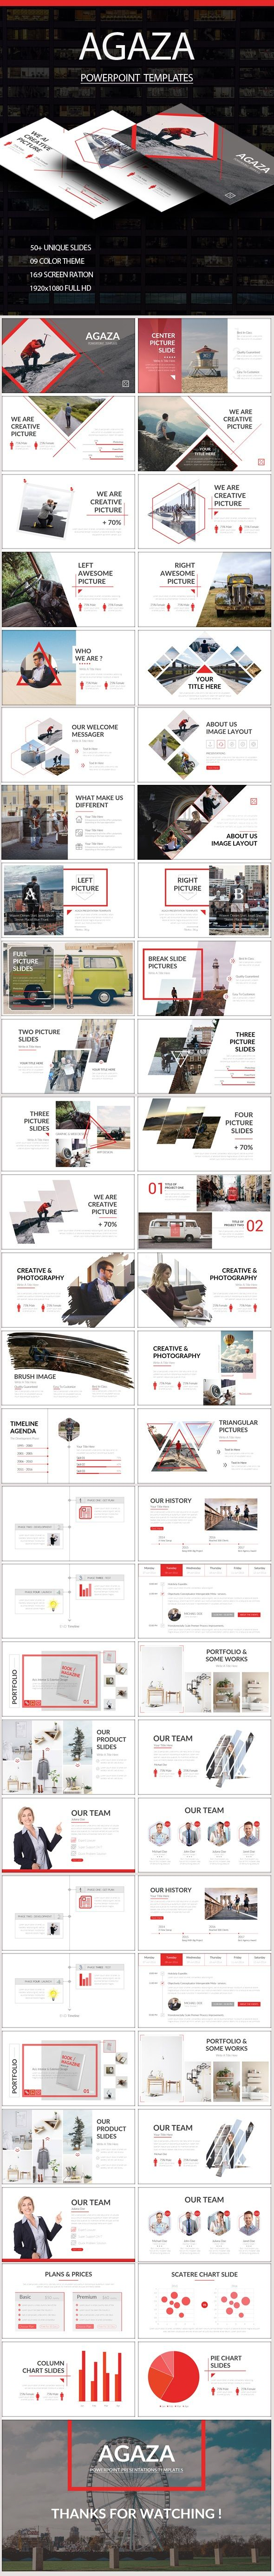 549 best powerpoint dossier images on pinterest editorial design agaza powerpoint templates toneelgroepblik Image collections